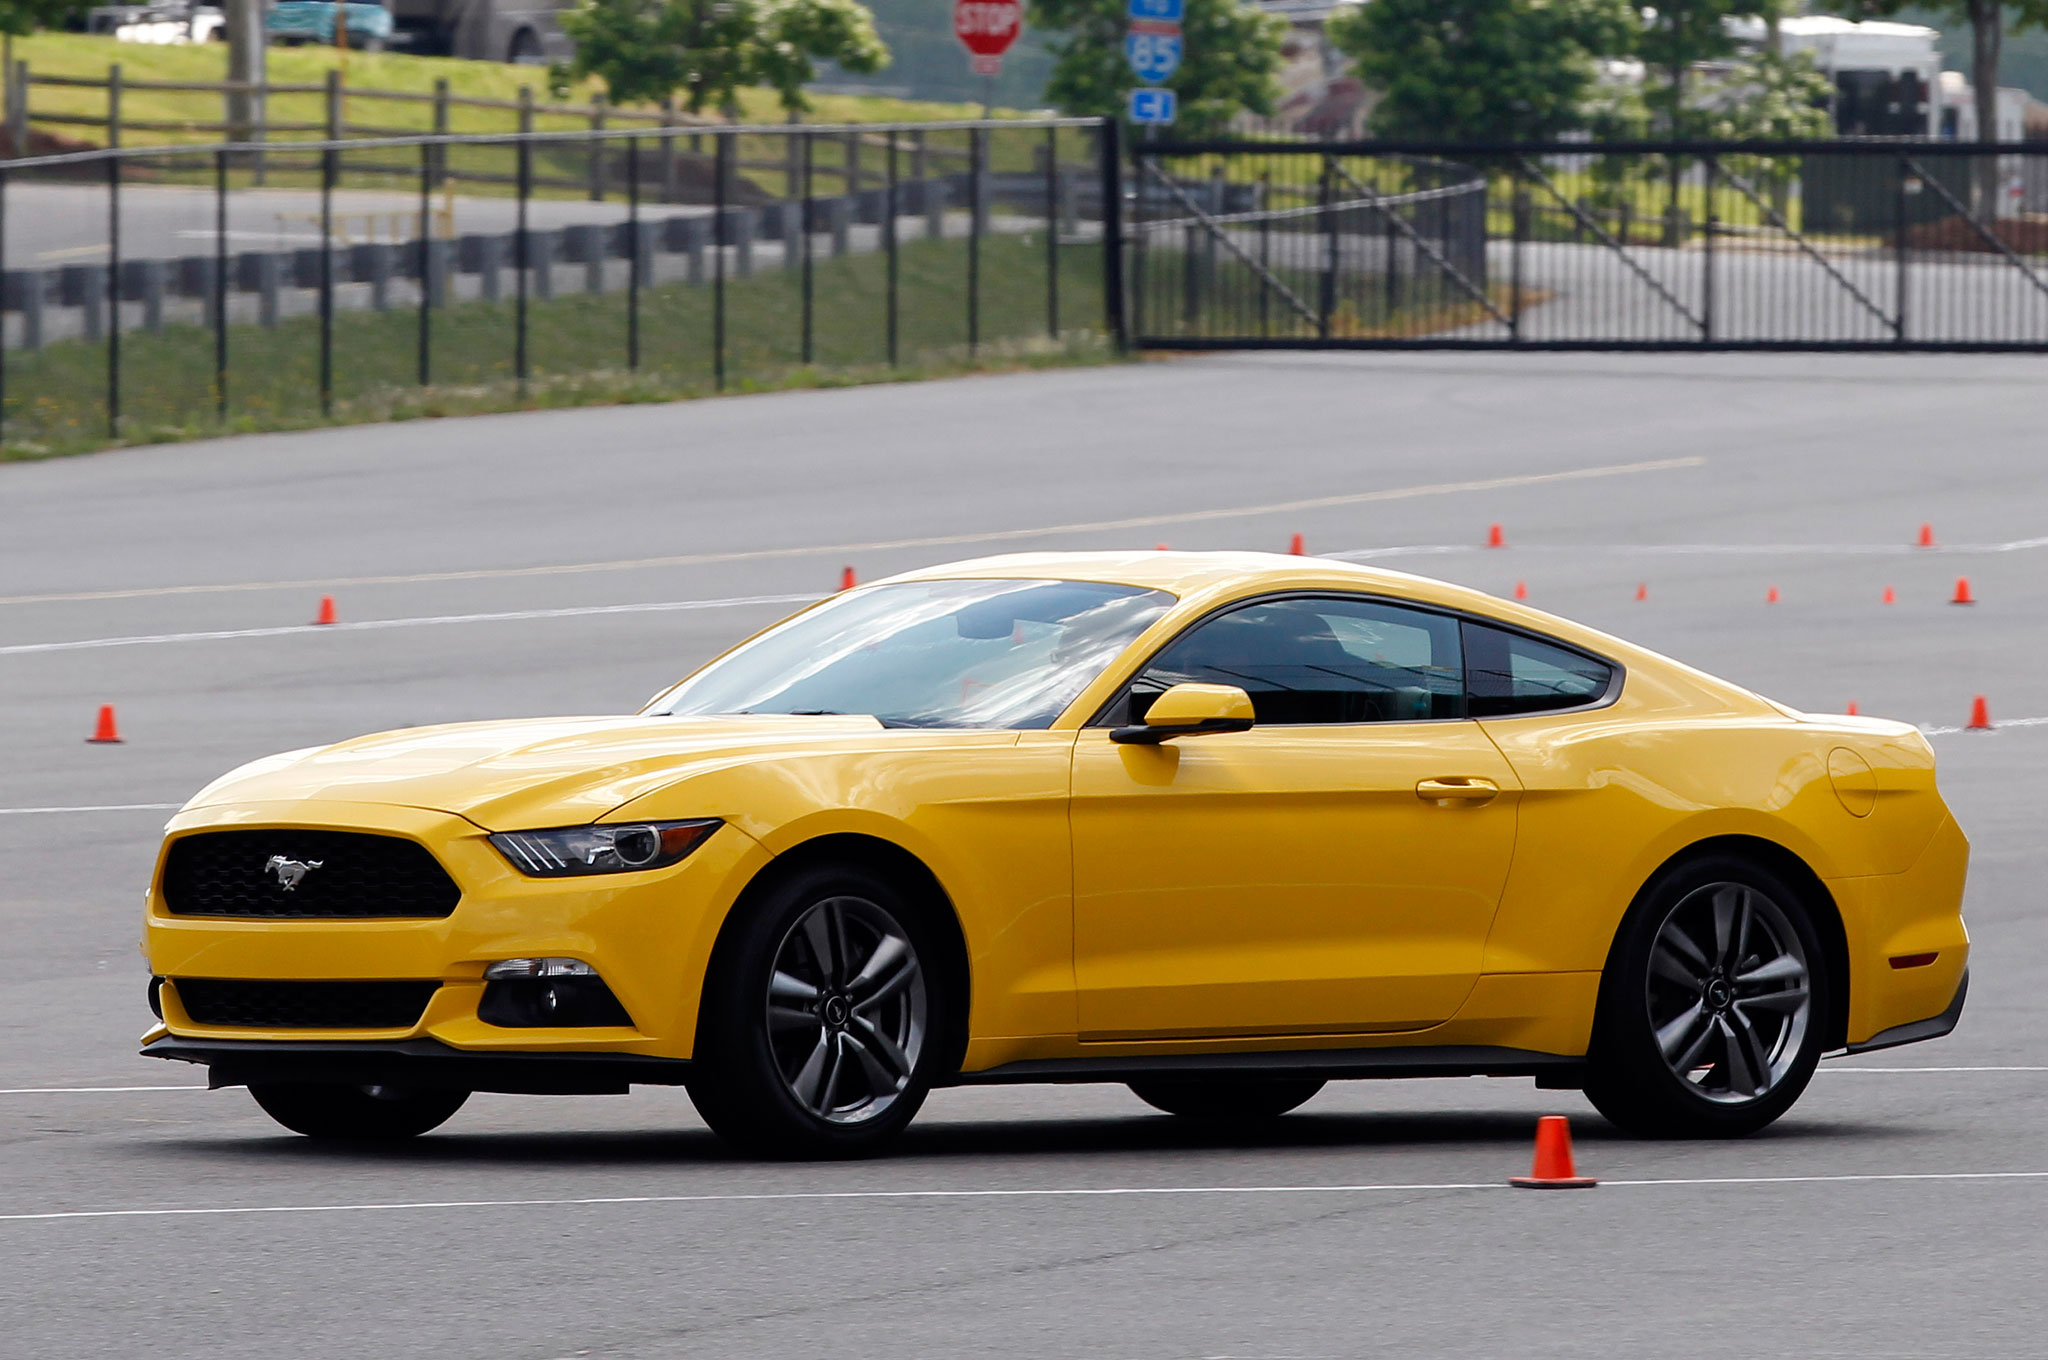 2015 Ford Mustang Configurator Pricing Details Go Live Automobile Convertible Show More